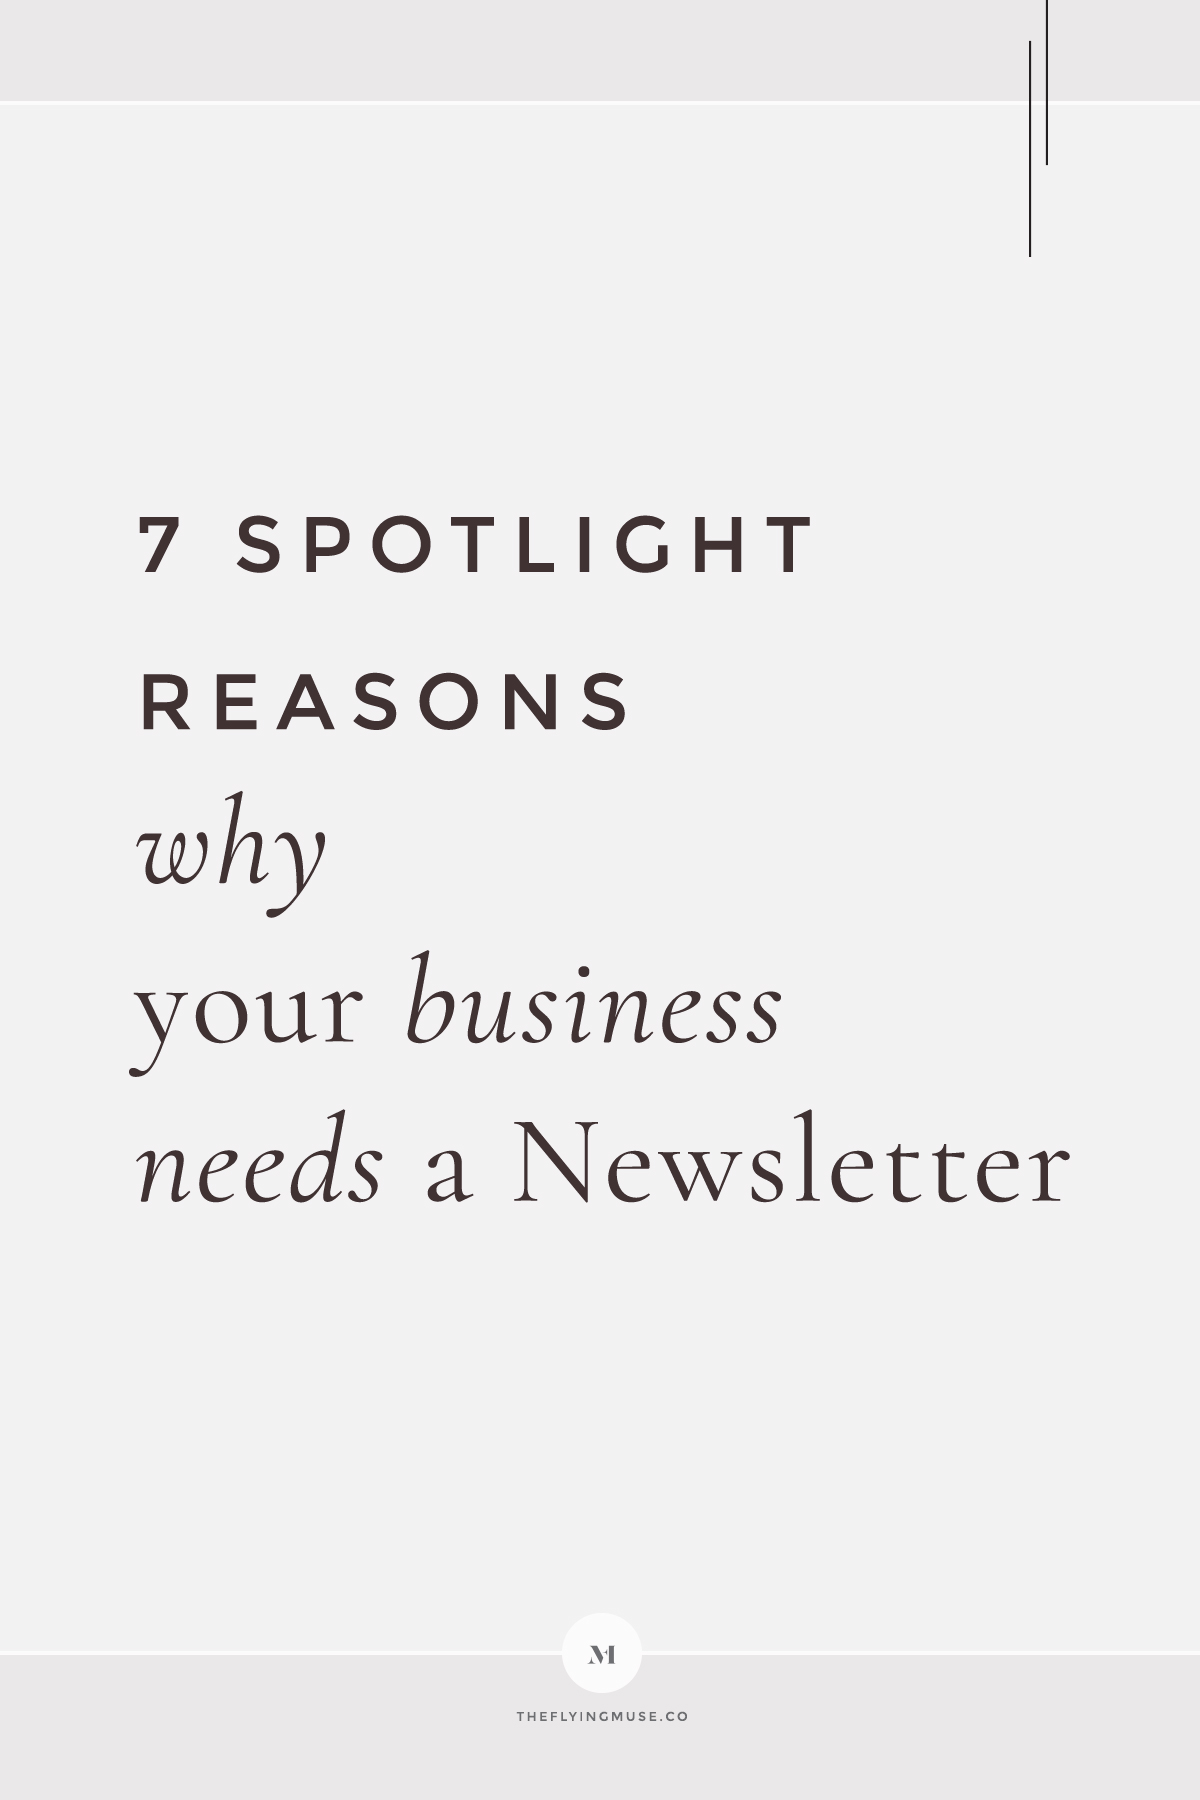 7 Spotlight Reasons why your Business Needs a Newsletter